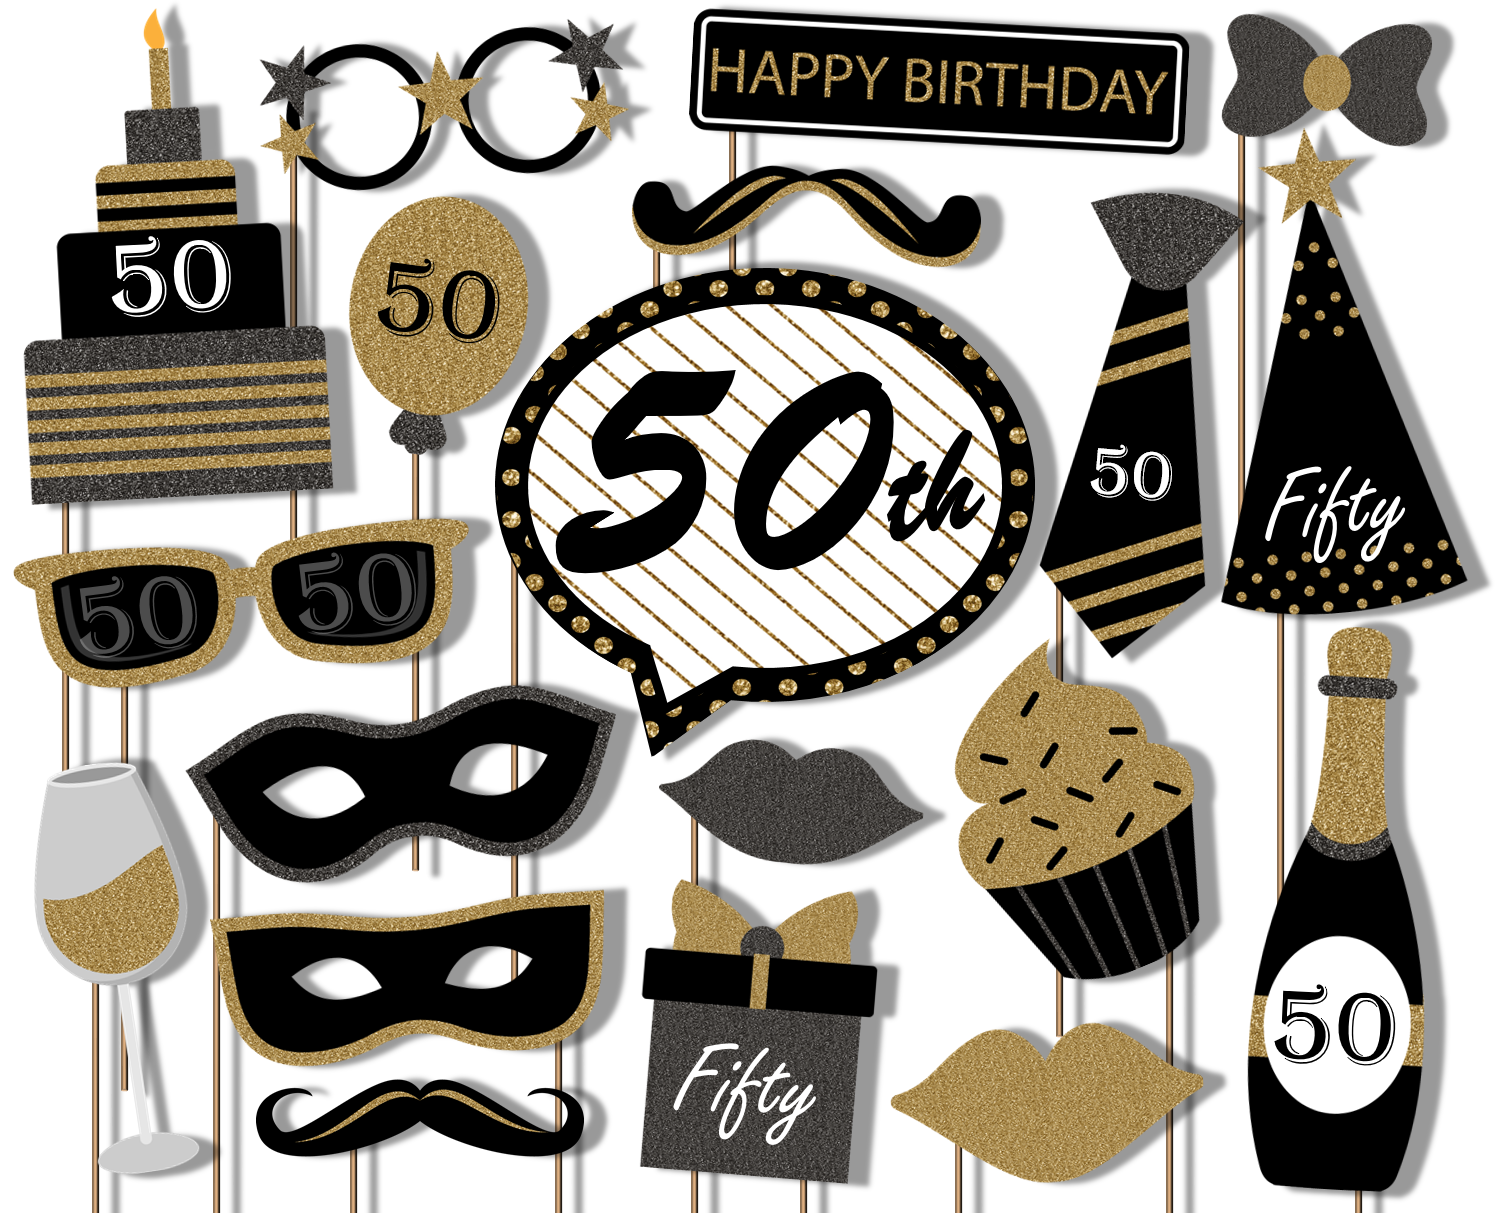 50th Birthday Black & Gold Photo Booth Props 20pcs Assembled